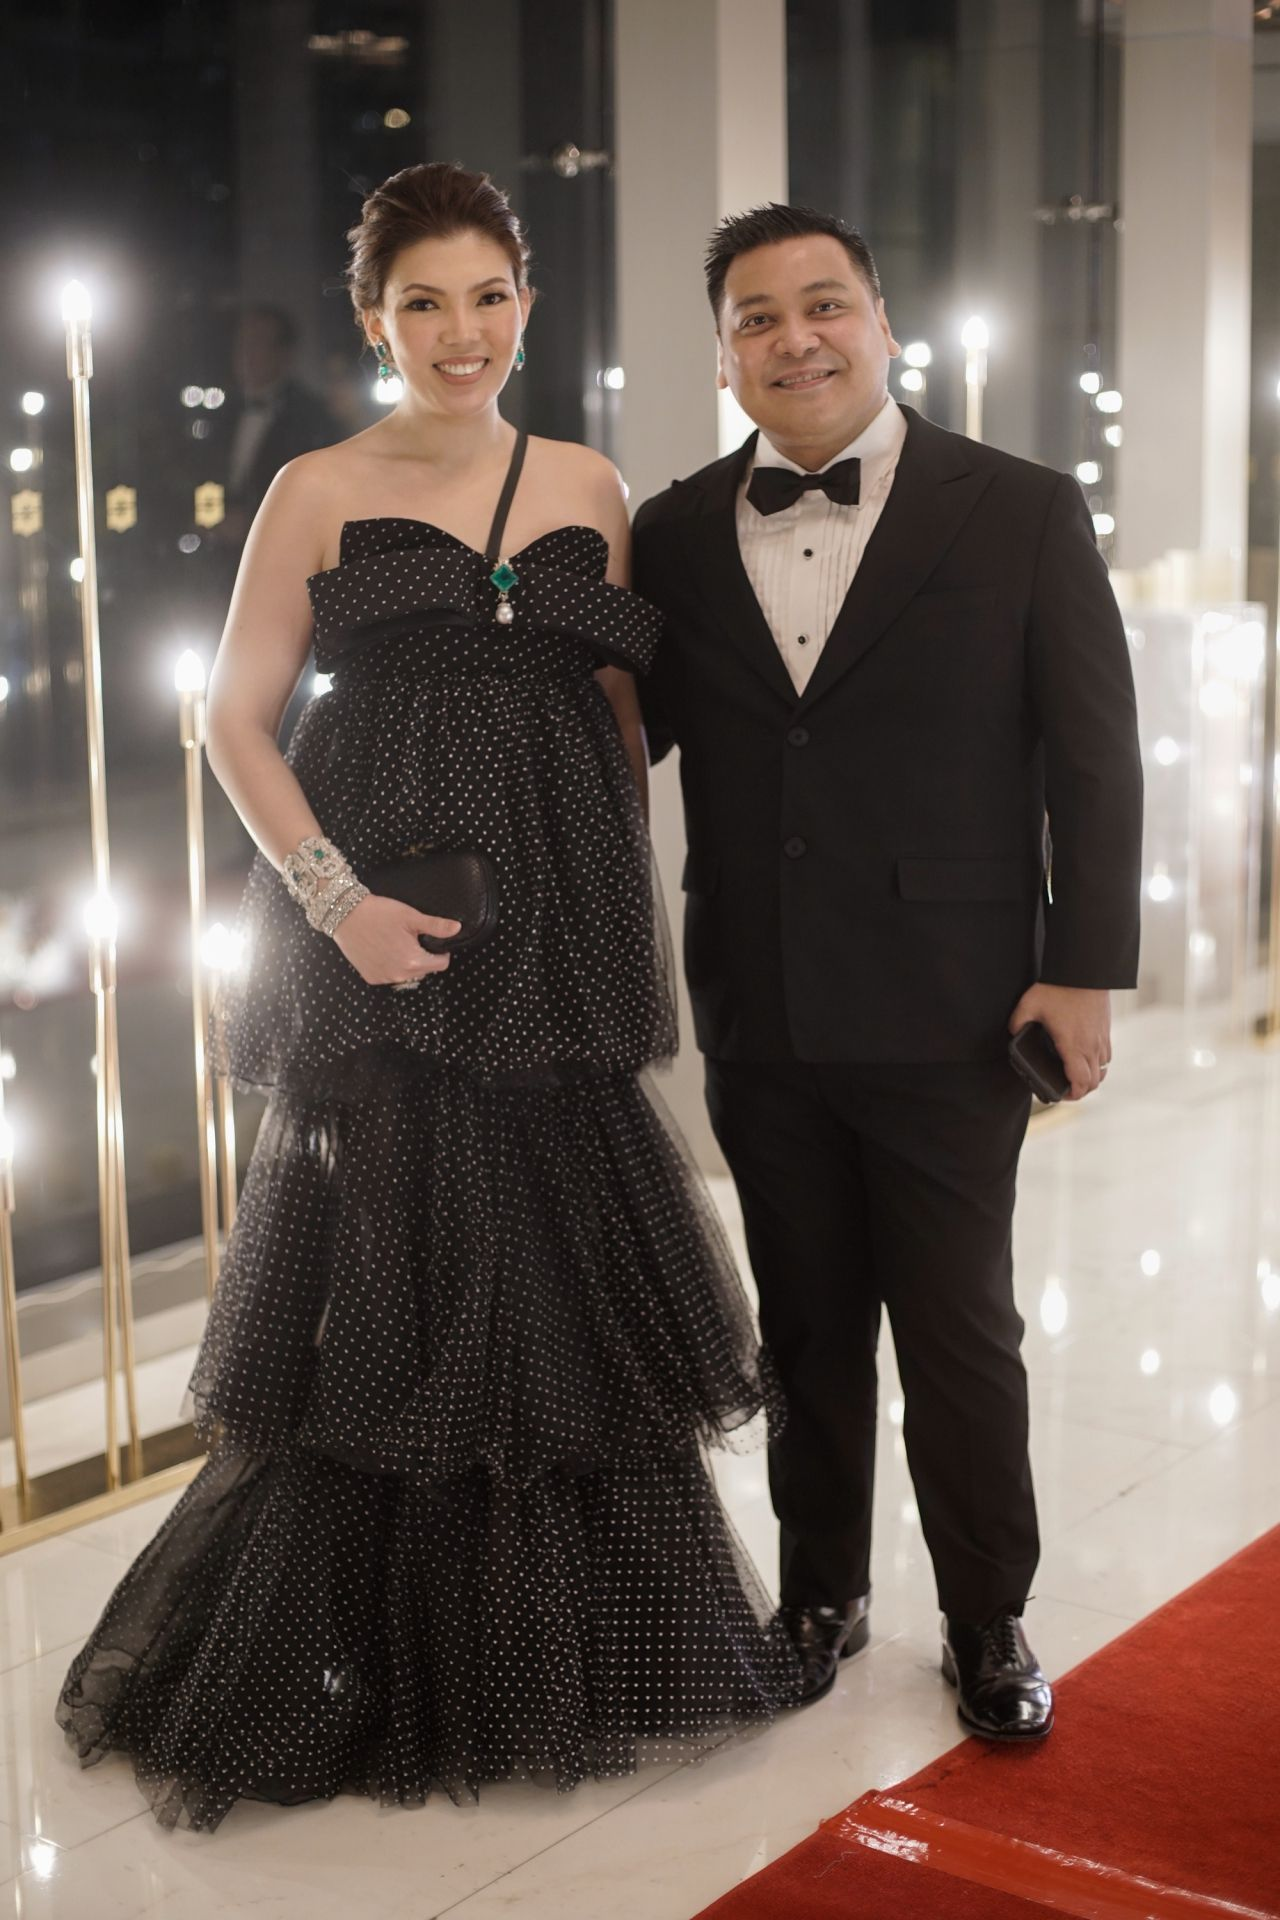 Erica and Francis Reyes